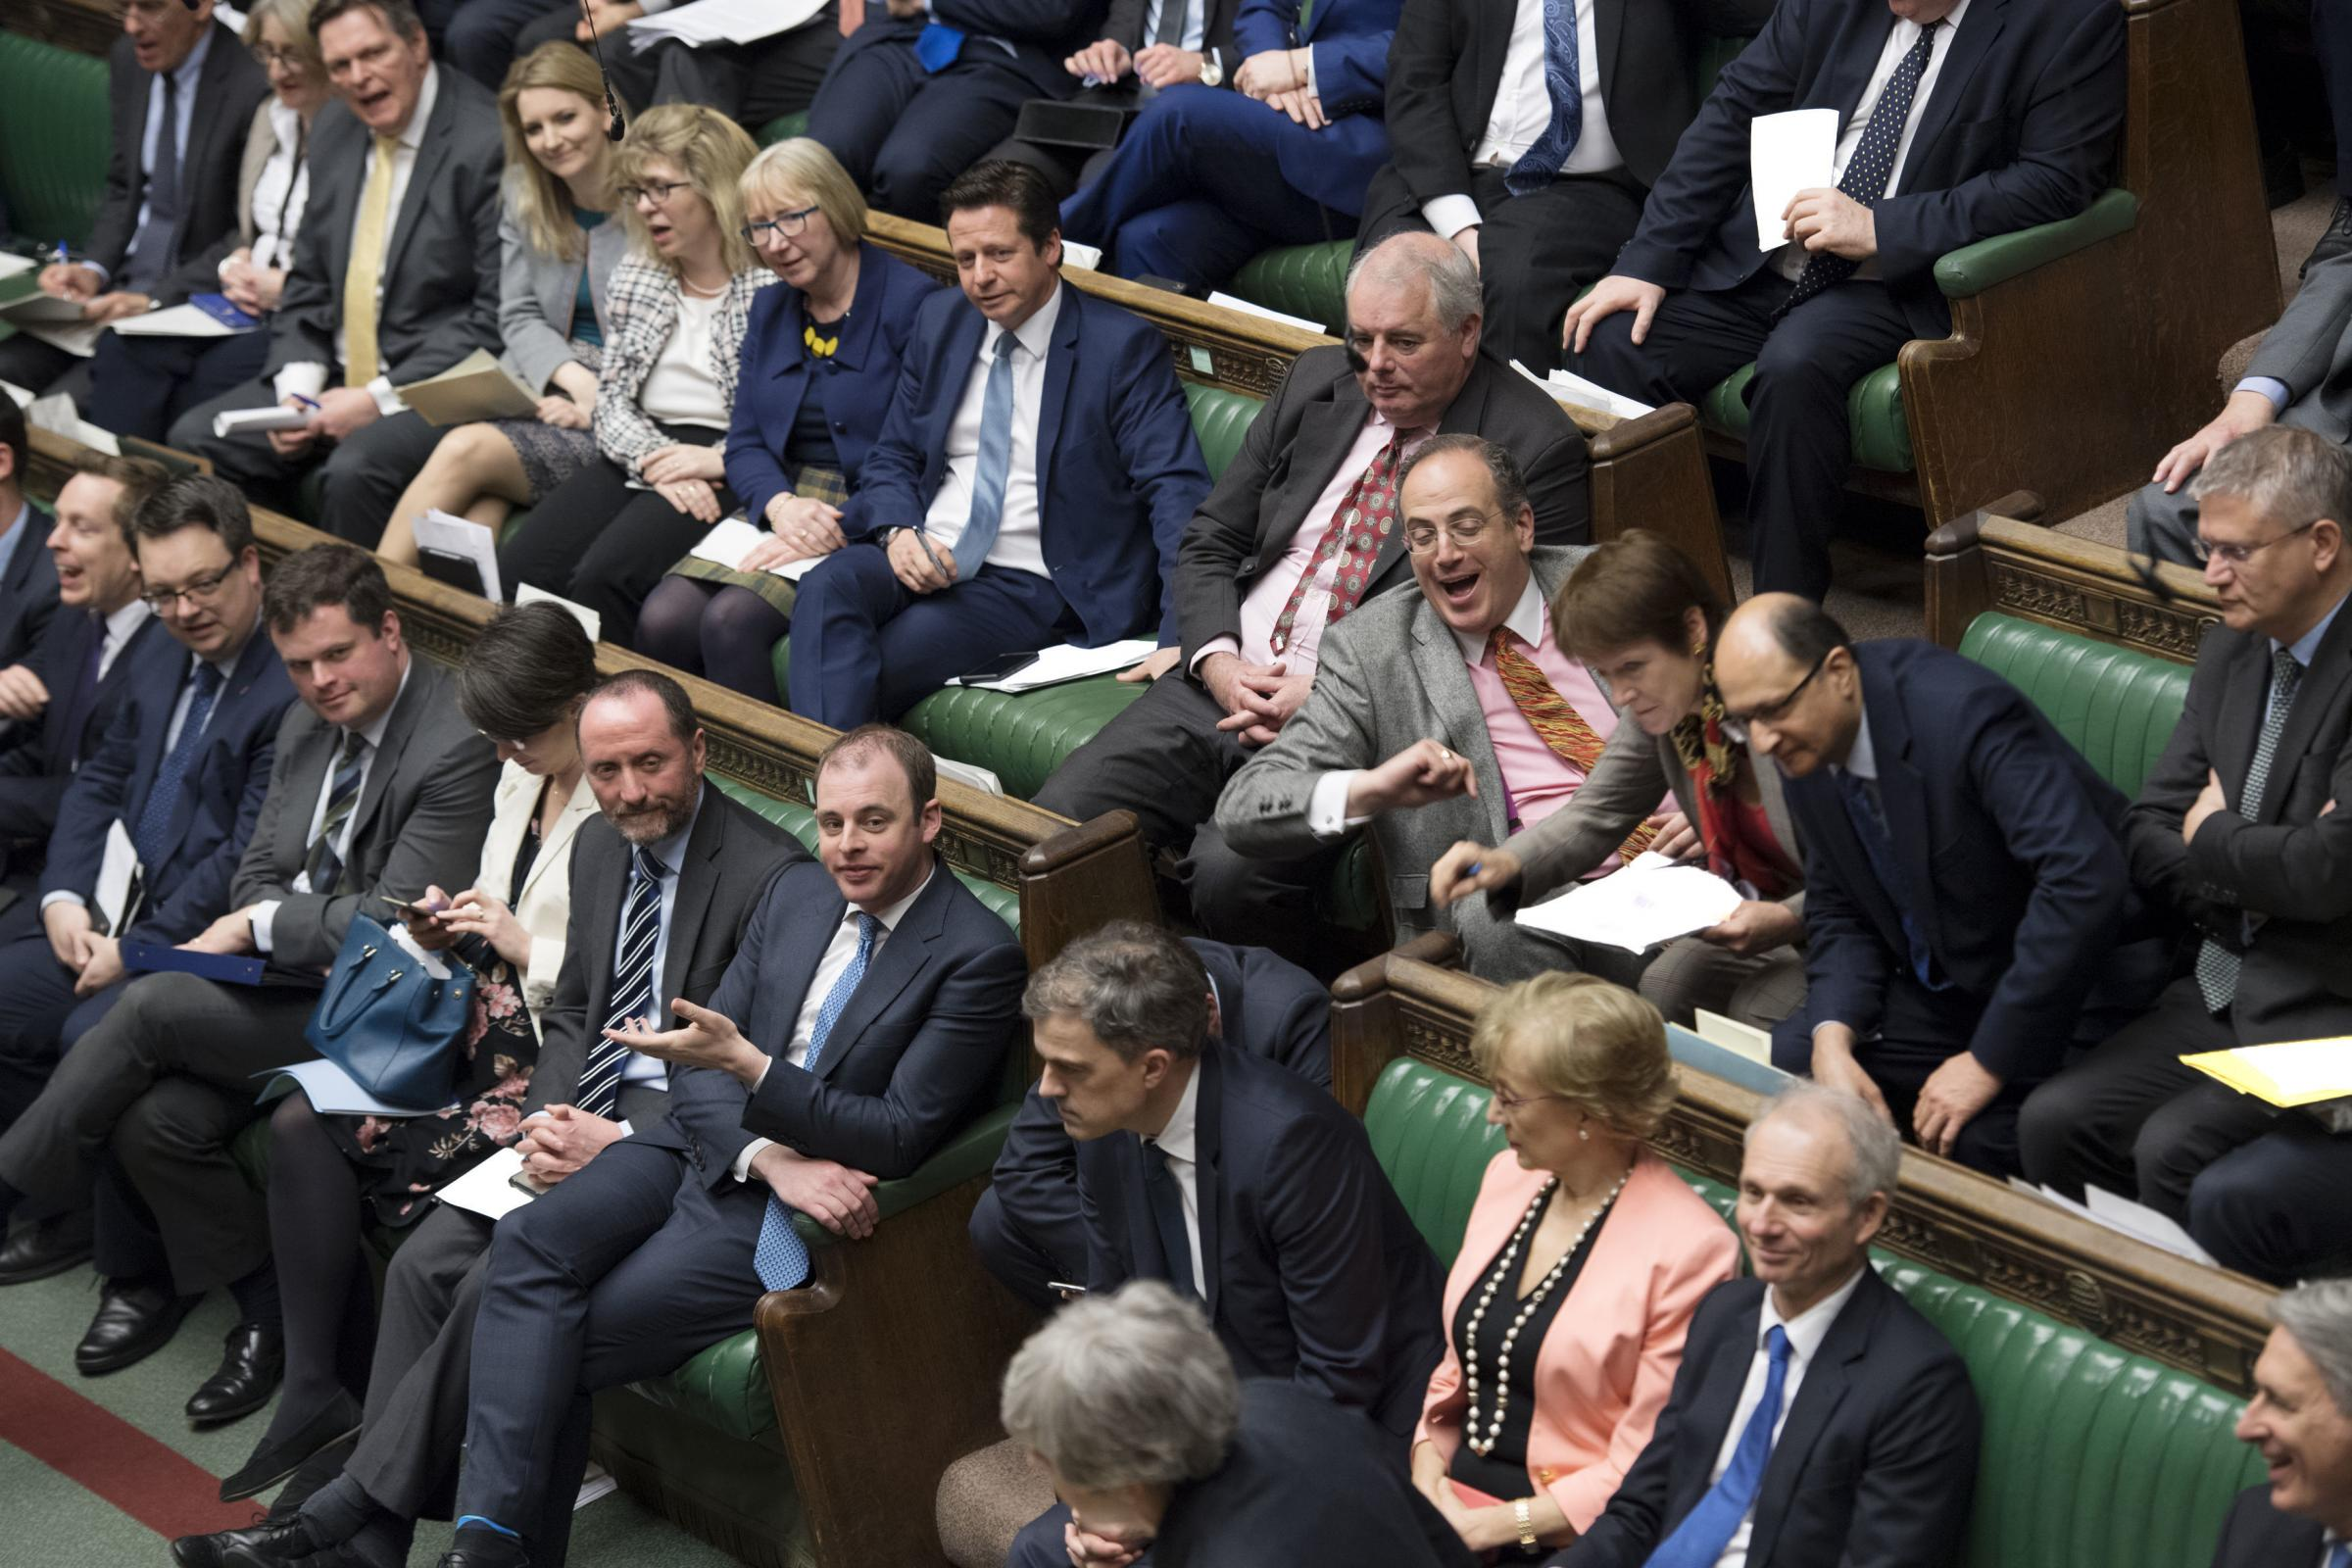 MPs in the House of Commons this week